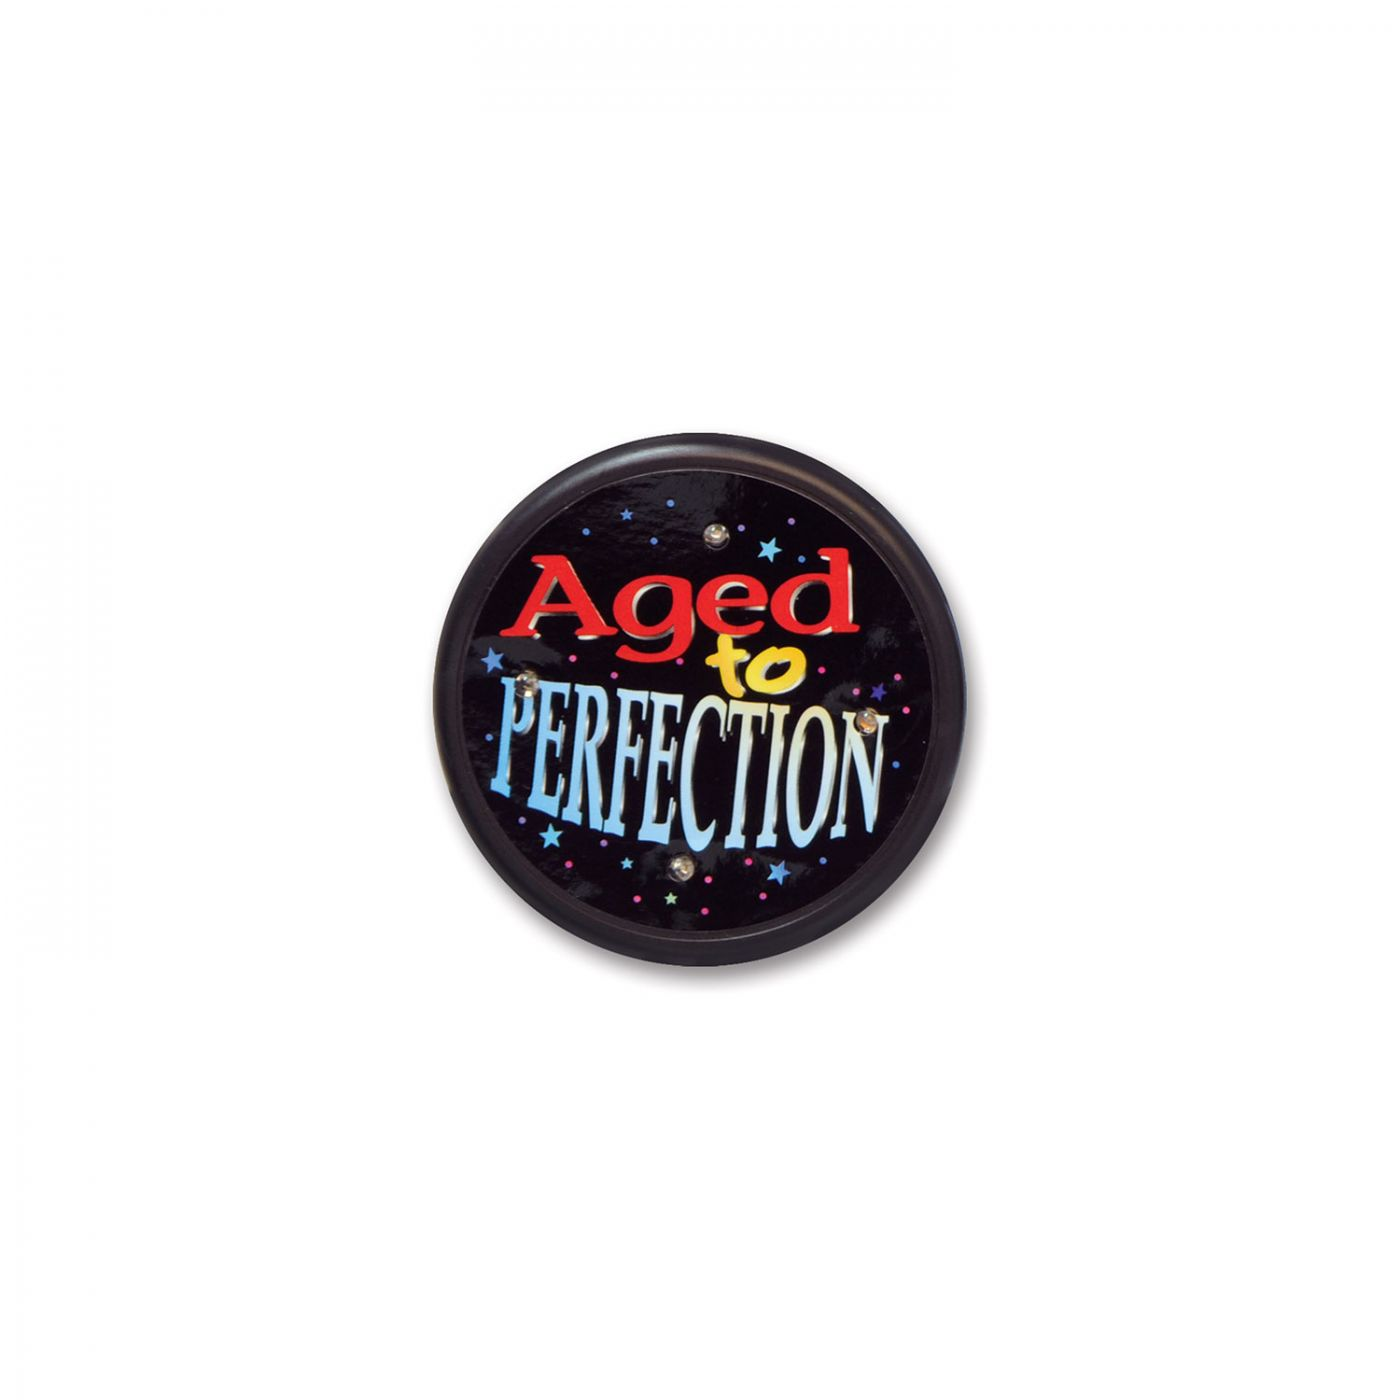 Image of Aged To Perfection Flashing Button (6)